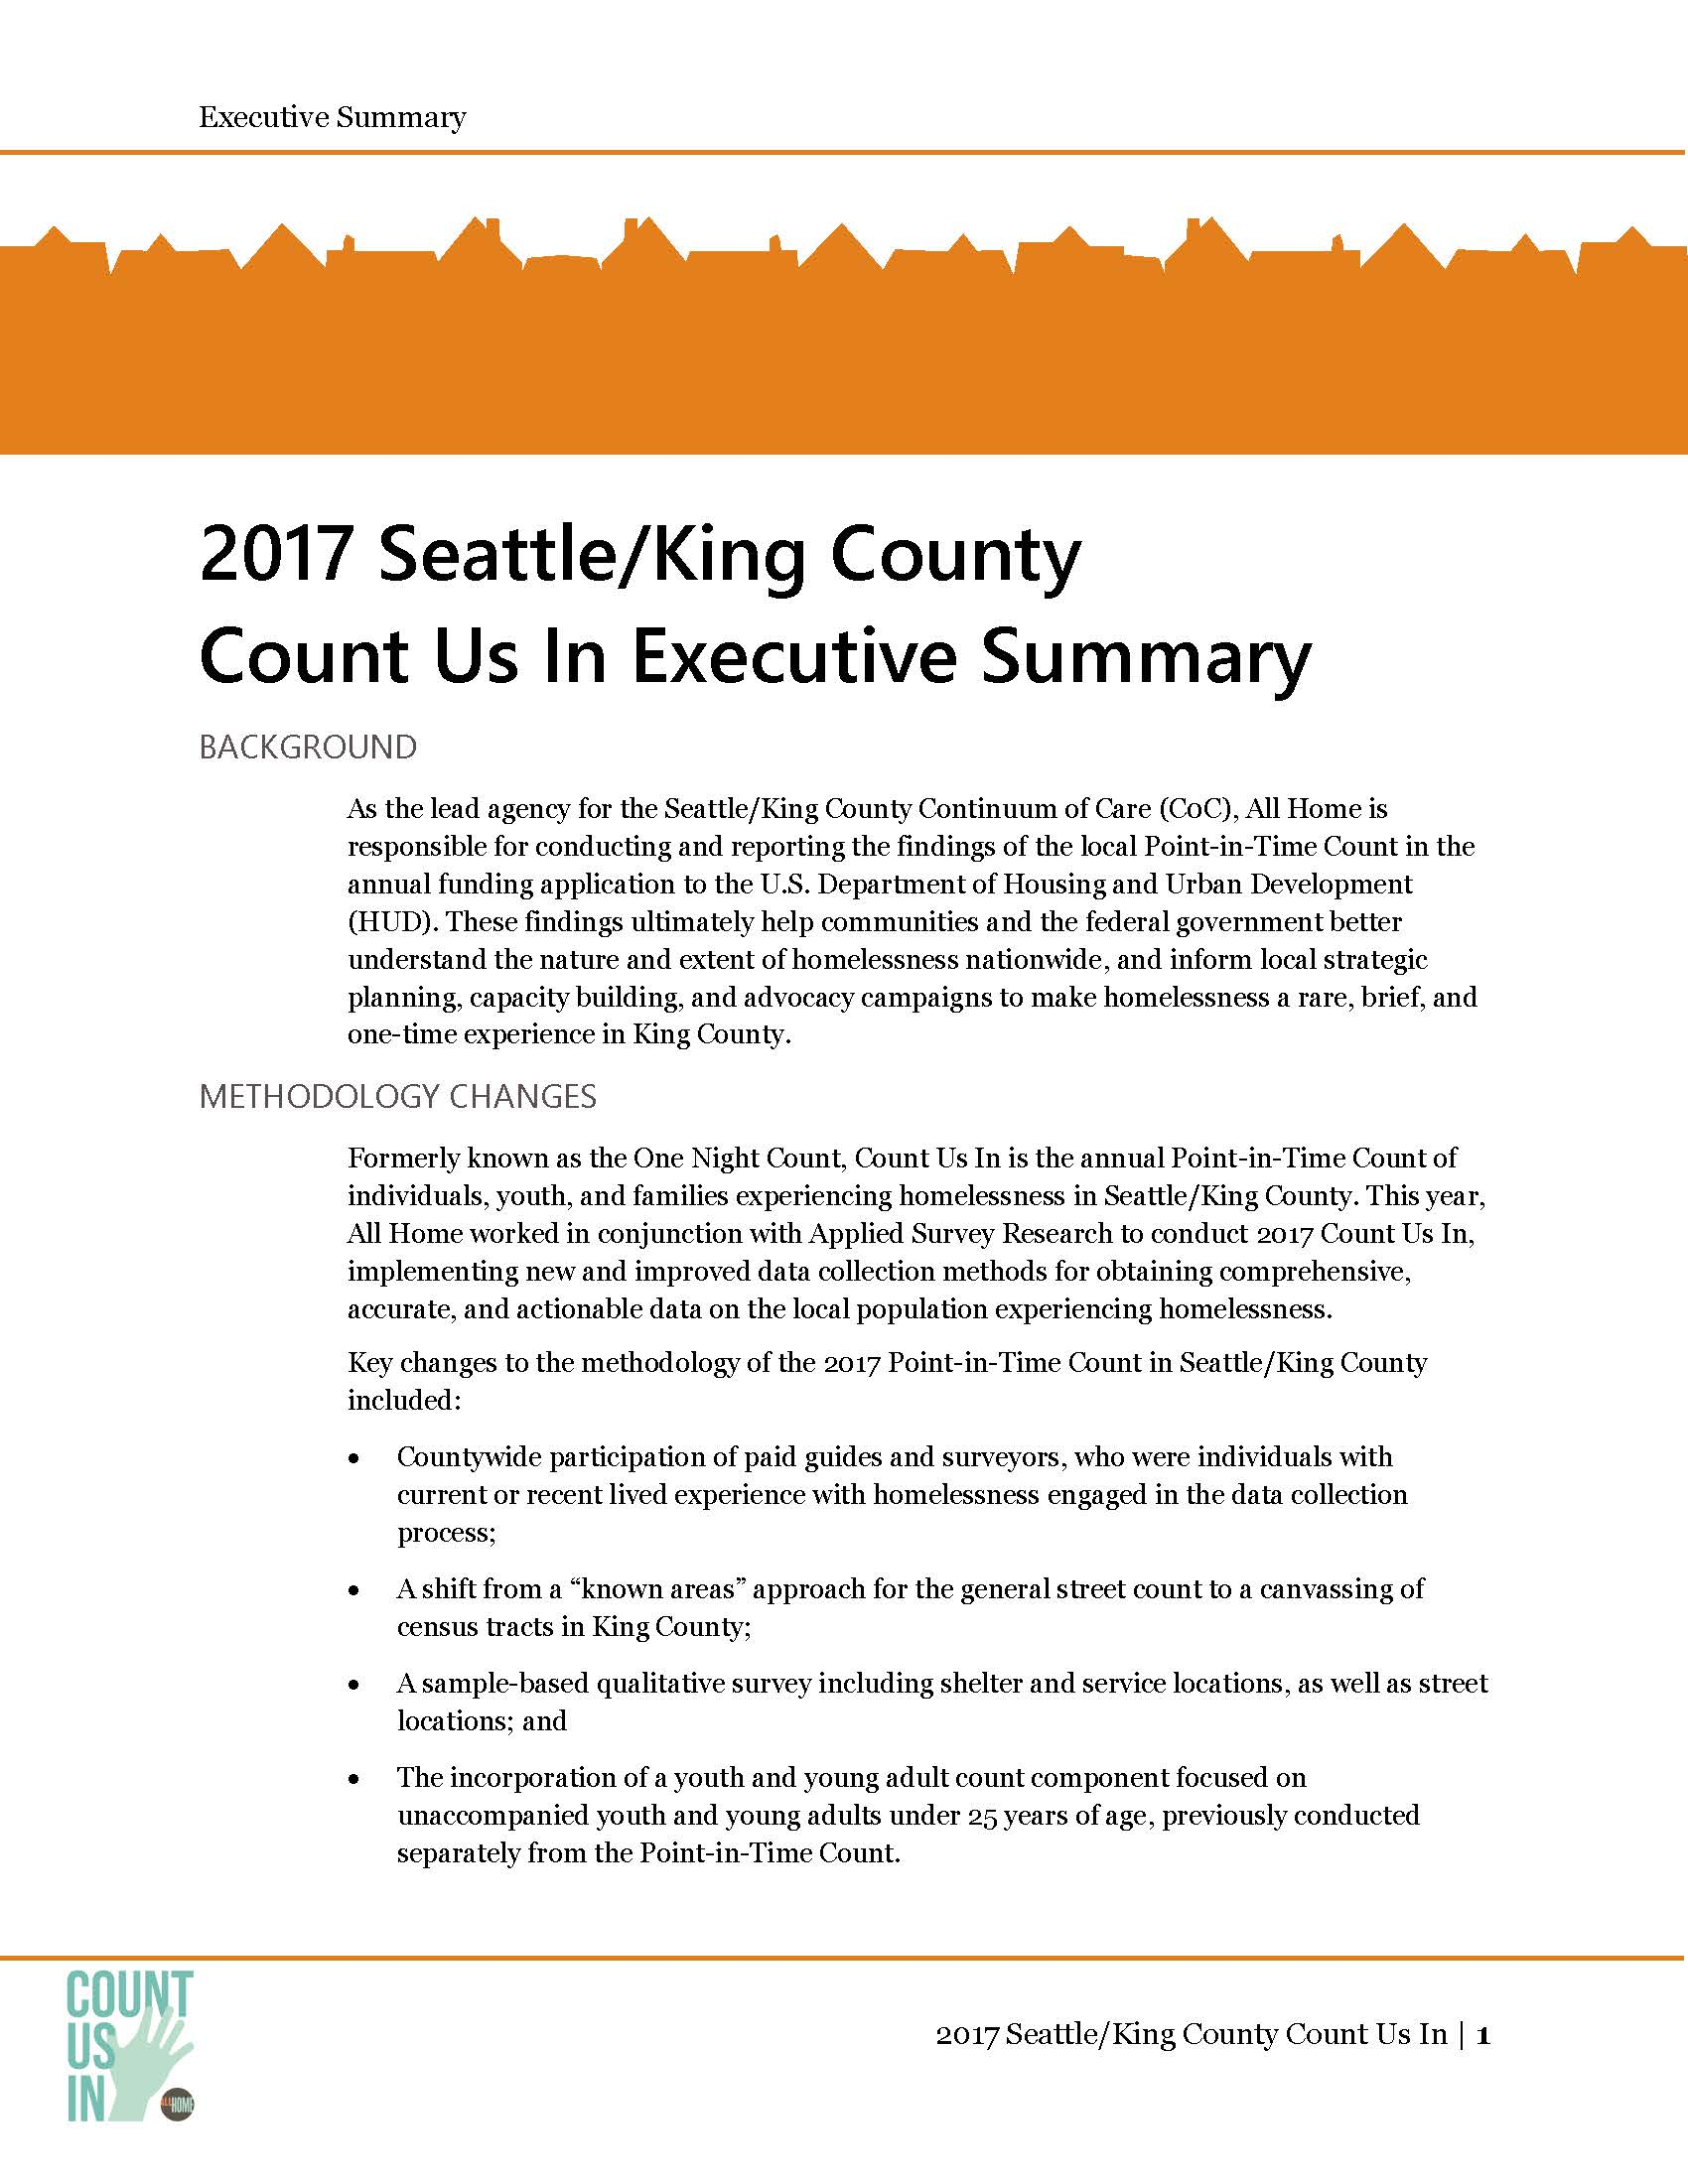 2017 King PIT Count EXEC SUMMARY ONLY - FINAL DRAFT 5.31.17 1.jpg